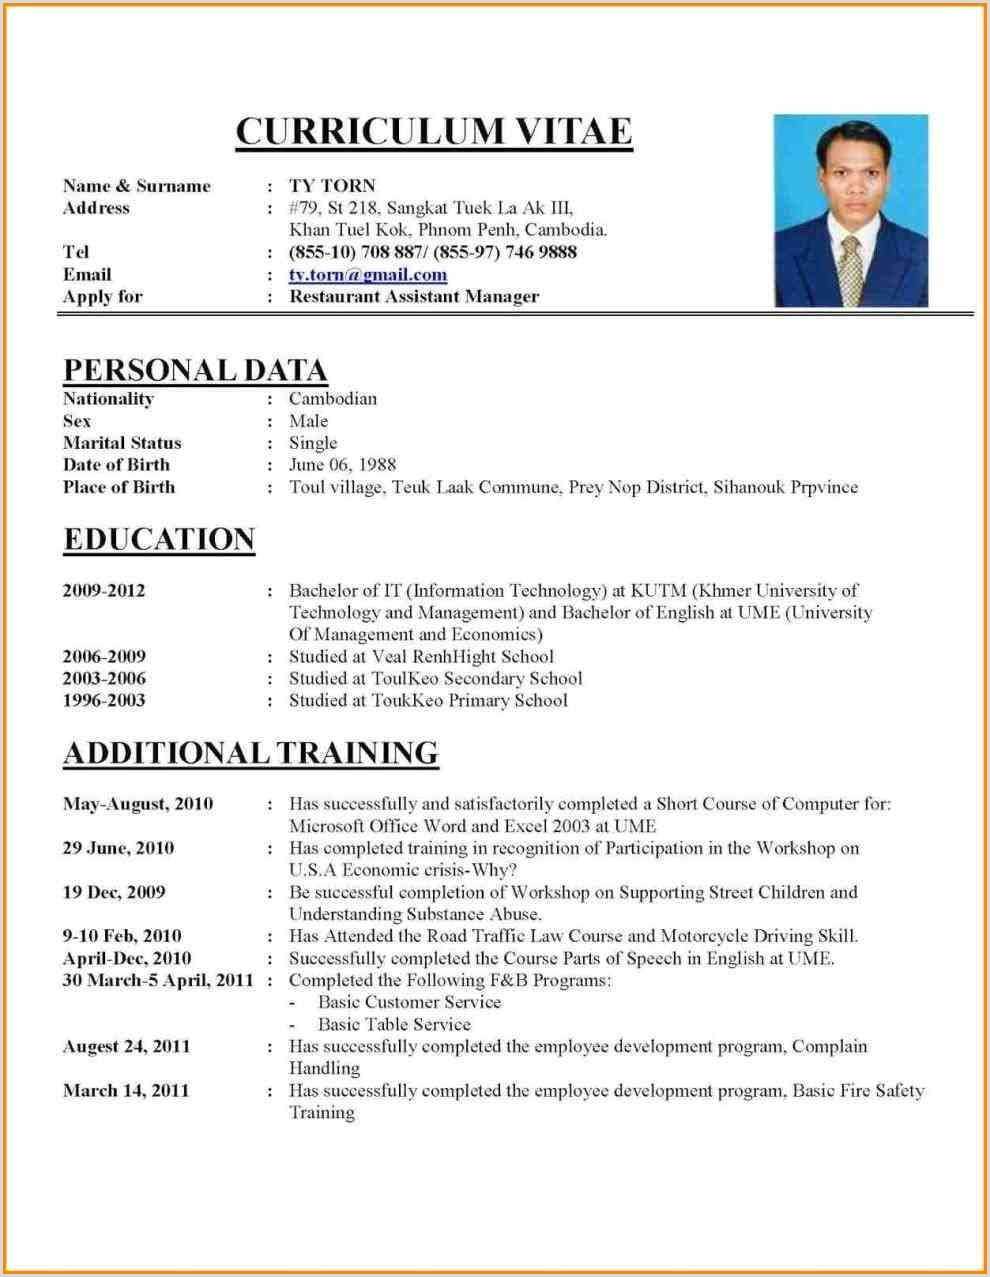 Cv Example for Job Application Cv Template Job Application 1 Cv Template